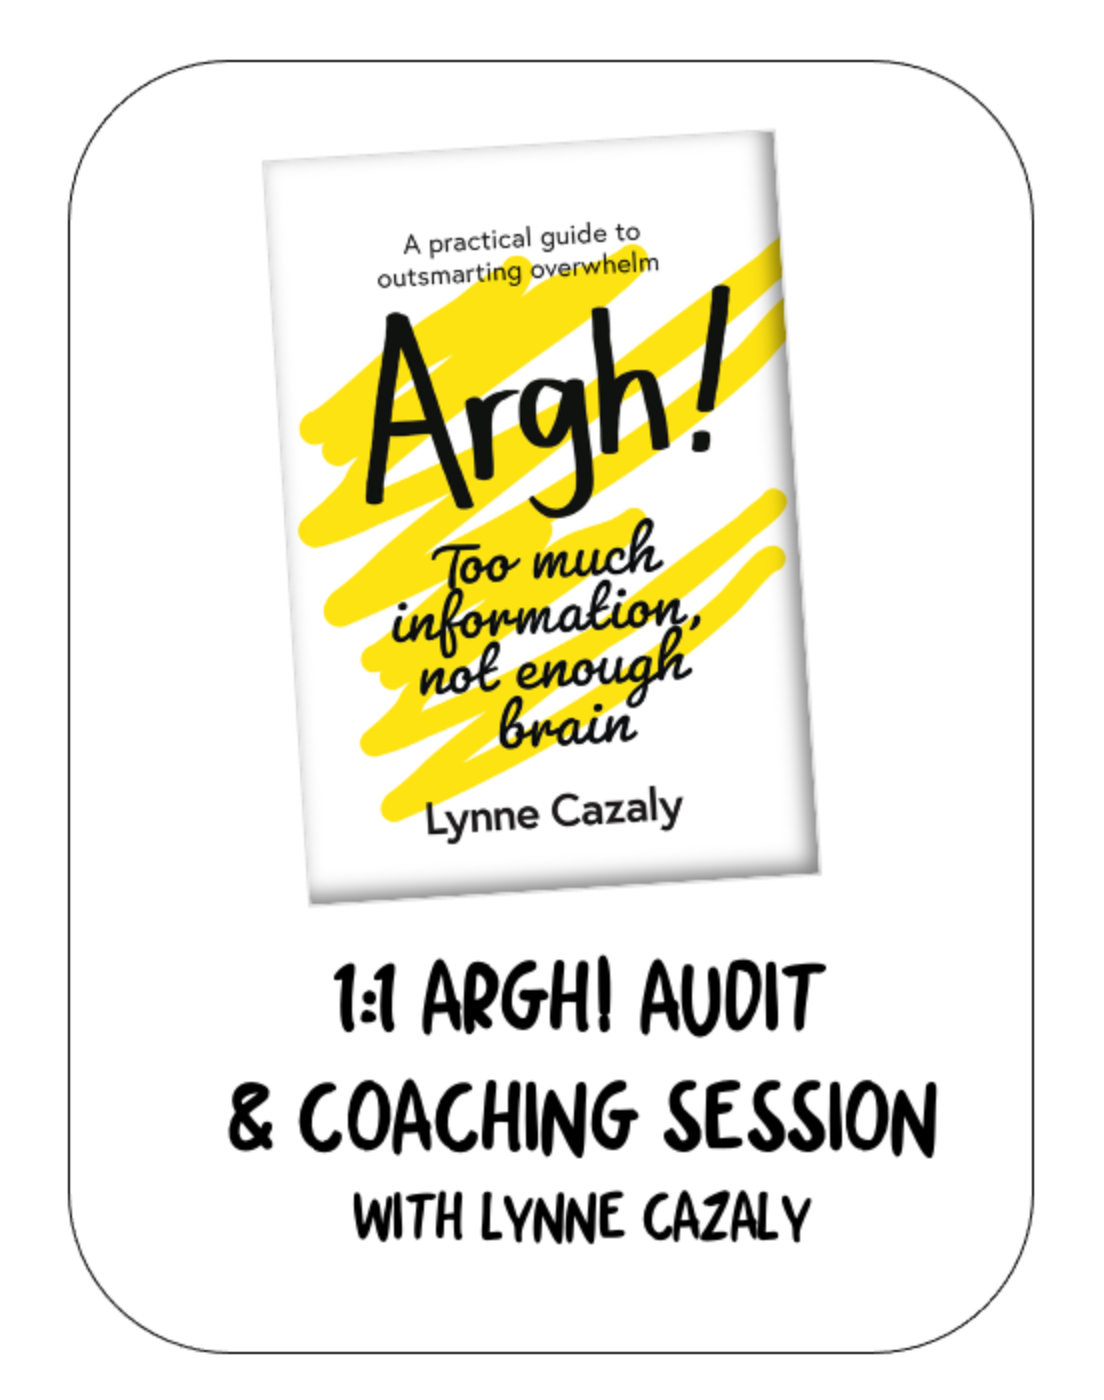 1:1 Argh Audit and Coaching Session